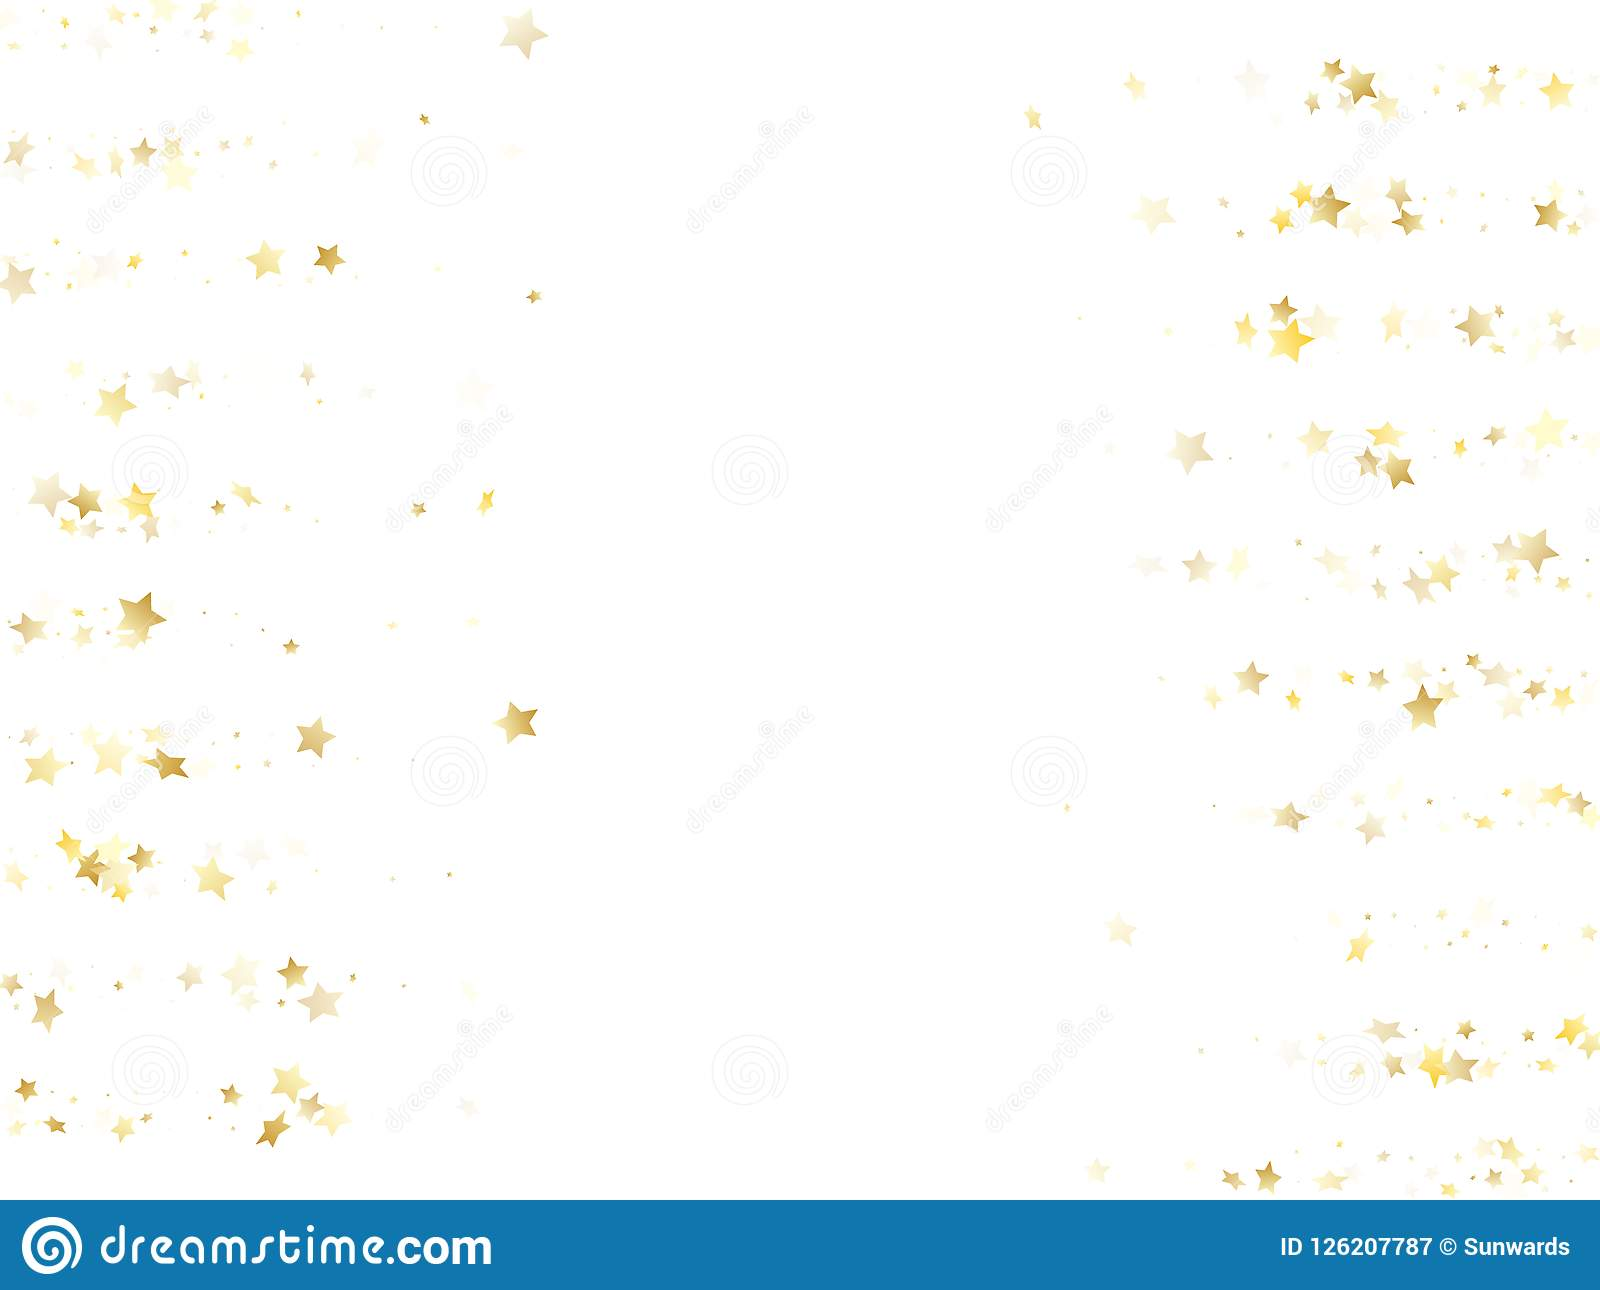 magic gold sparkle texture vector star background